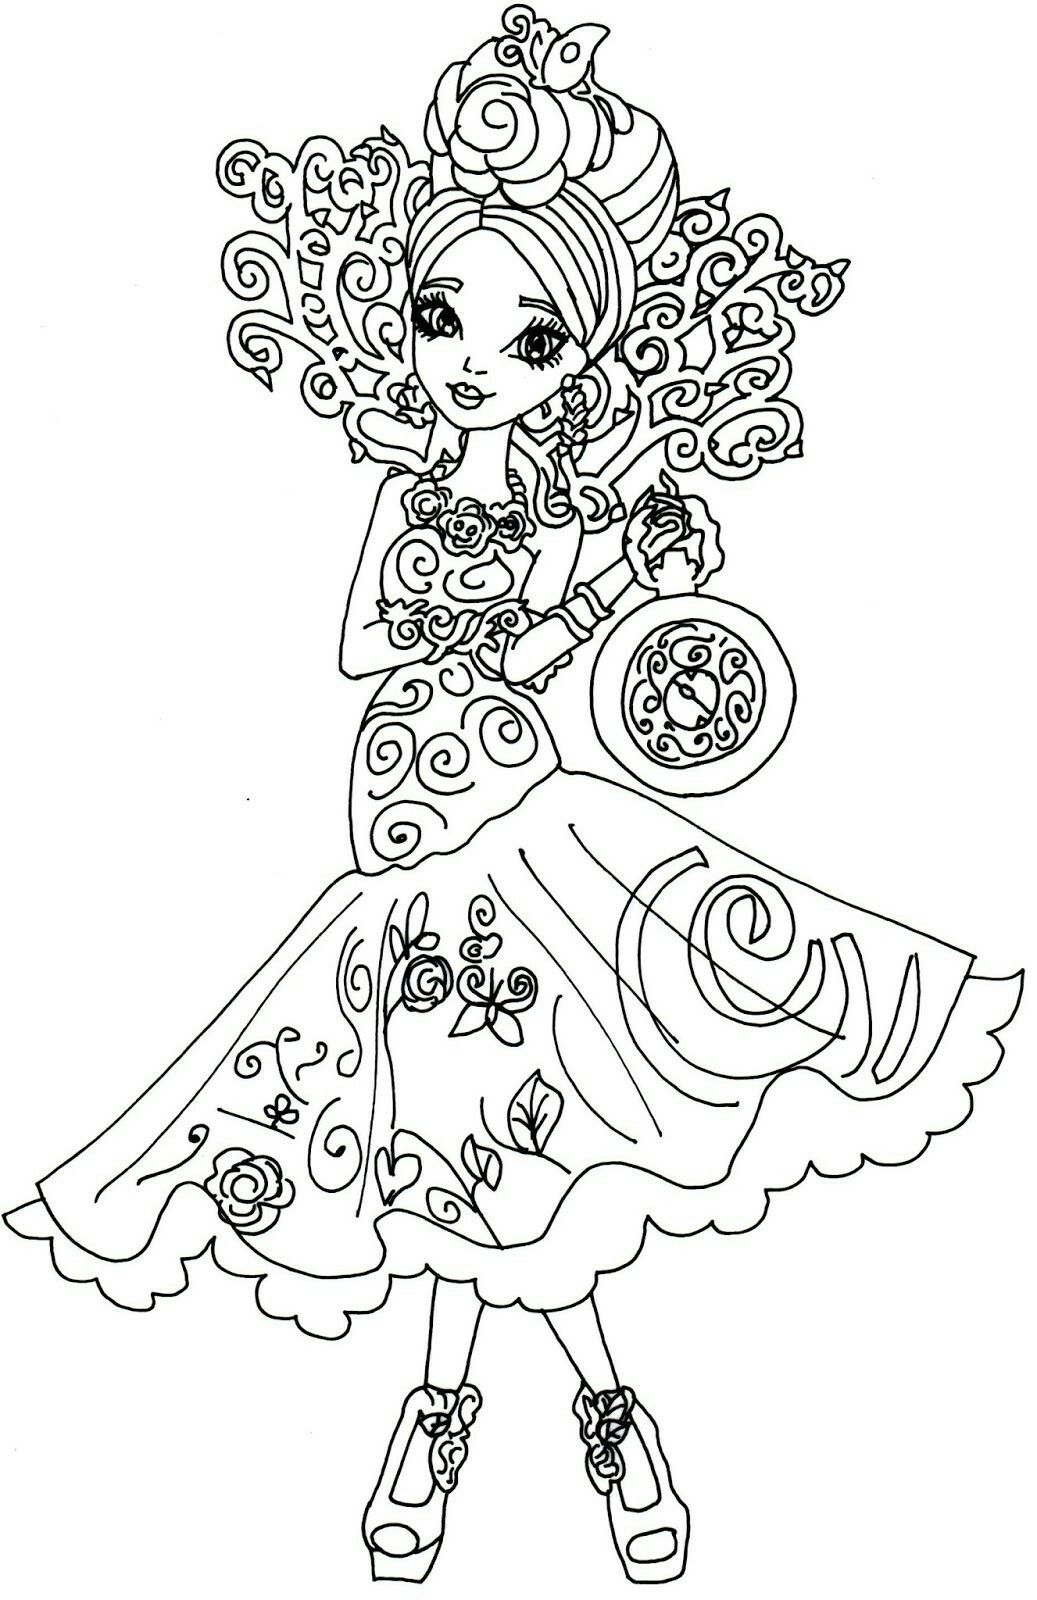 Pin By Joyce Nikol On Ever After High Coloring Pages Cool Coloring Pages Cute Coloring Pages